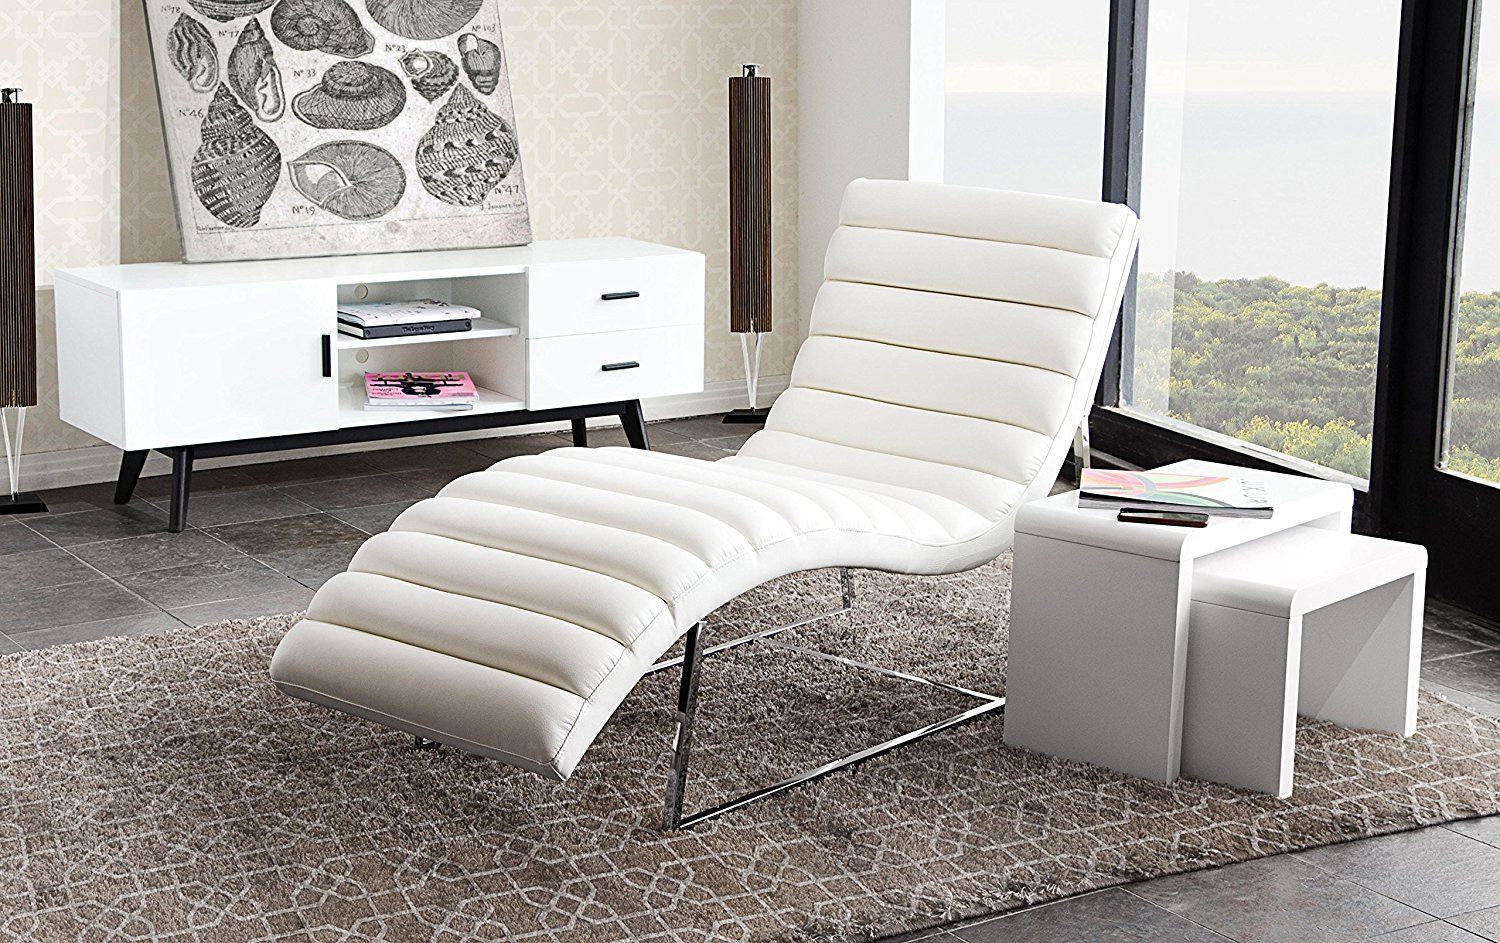 12 of the Best Looking Modern Chaise Lounges | Apartment Therapy White Chaise Lounge Chair on white wrought iron patio furniture chair, red lounge chair, black lounge chair, shays lounge chair, leather lounge chair, white chair chair, white bergere chair, reclining lounge chair, wicker lounge chair, white swan chair, white cushion chair, barcelona lounge chair, white vinyl strap lounge chair, white bar stool chair, corner lounge chair, white plastic lounge chairs, sofa lounge chair, leather chaise chair, antique lounge chair, french lounge chair,